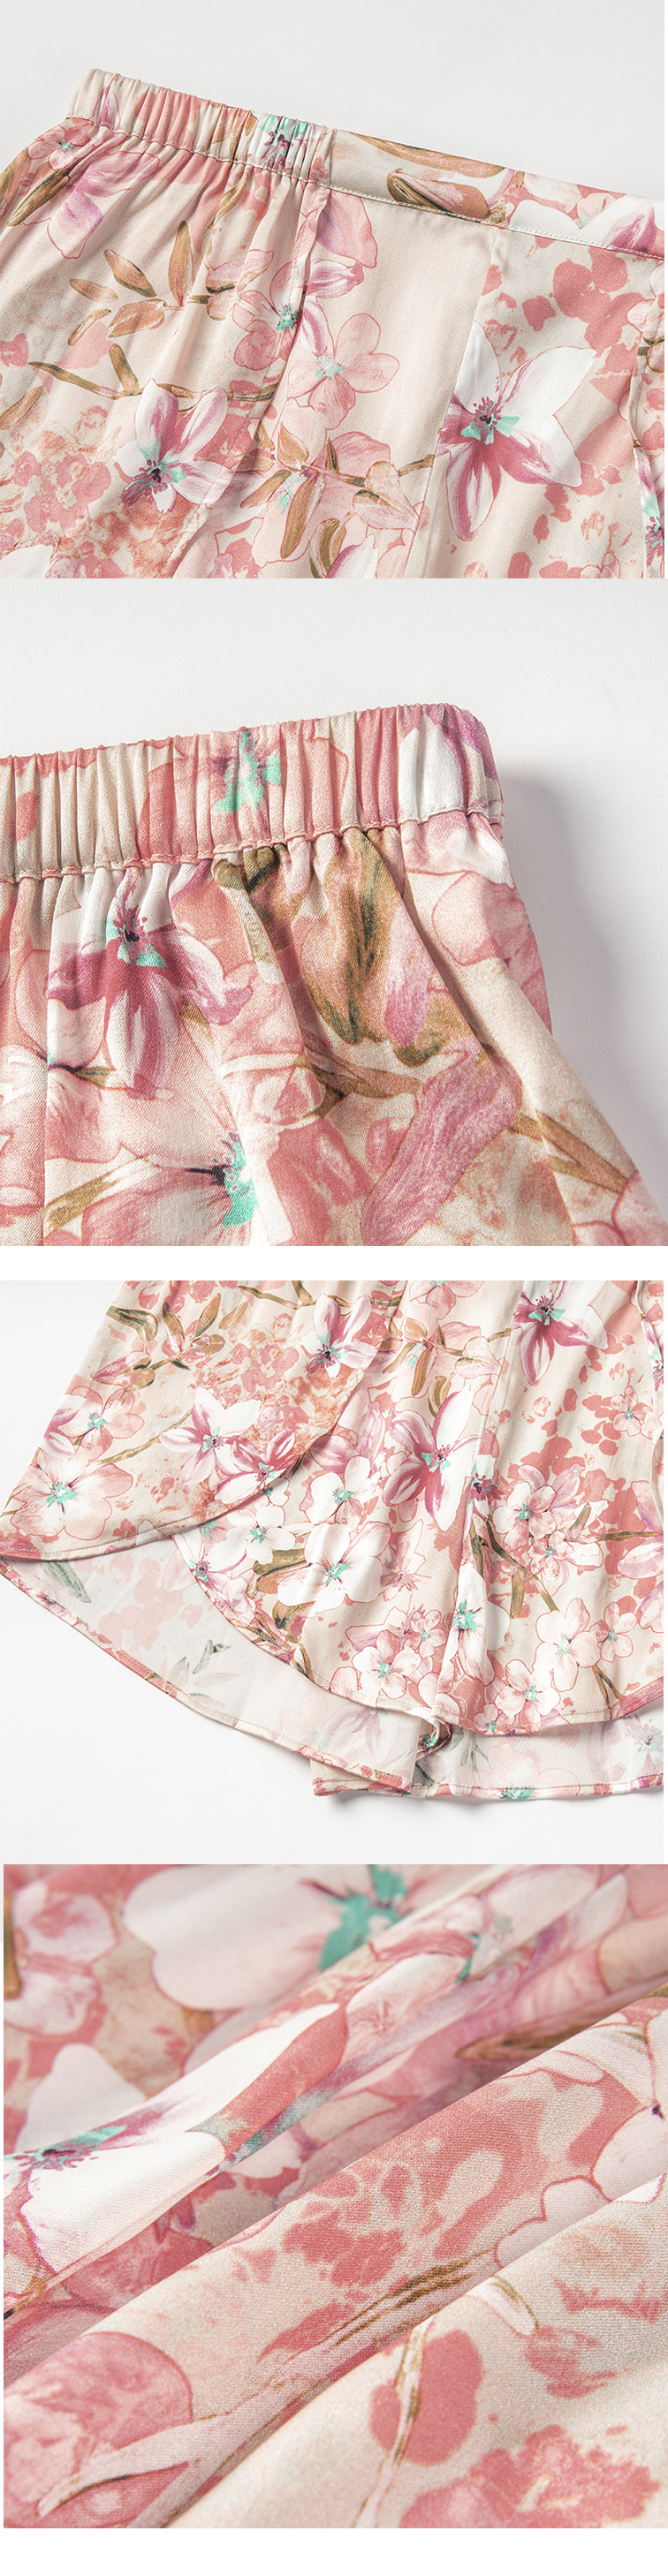 Favourable price silk floral sleepwear beautiful nightgown pretty pajamas